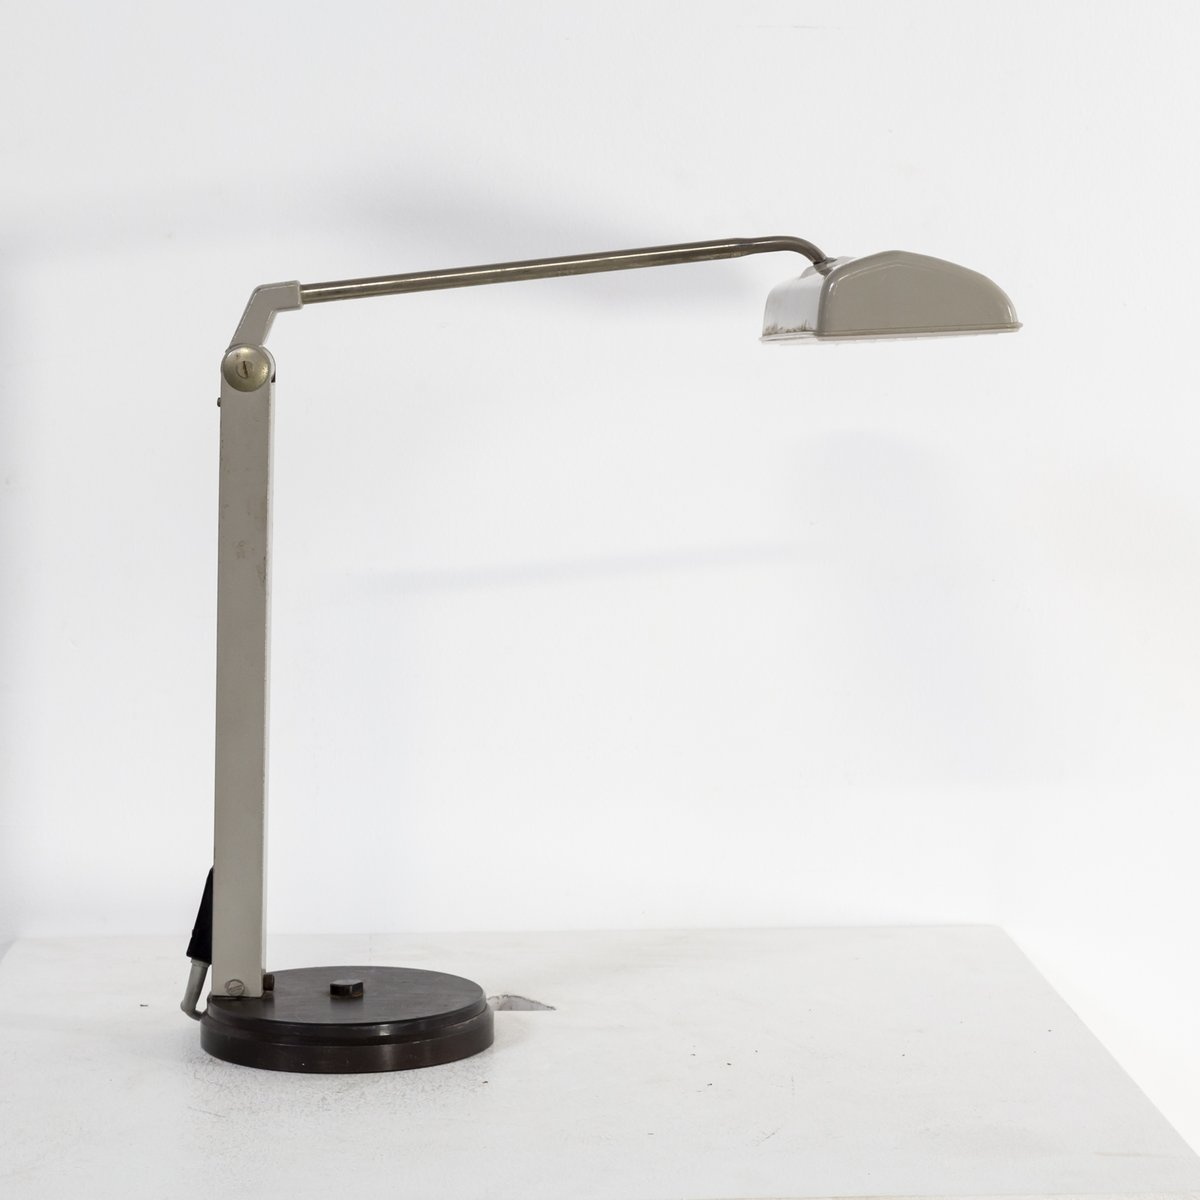 Leuchten Bilder Desk Lamp From Waldmann Leuchten, 1960s For Sale At Pamono